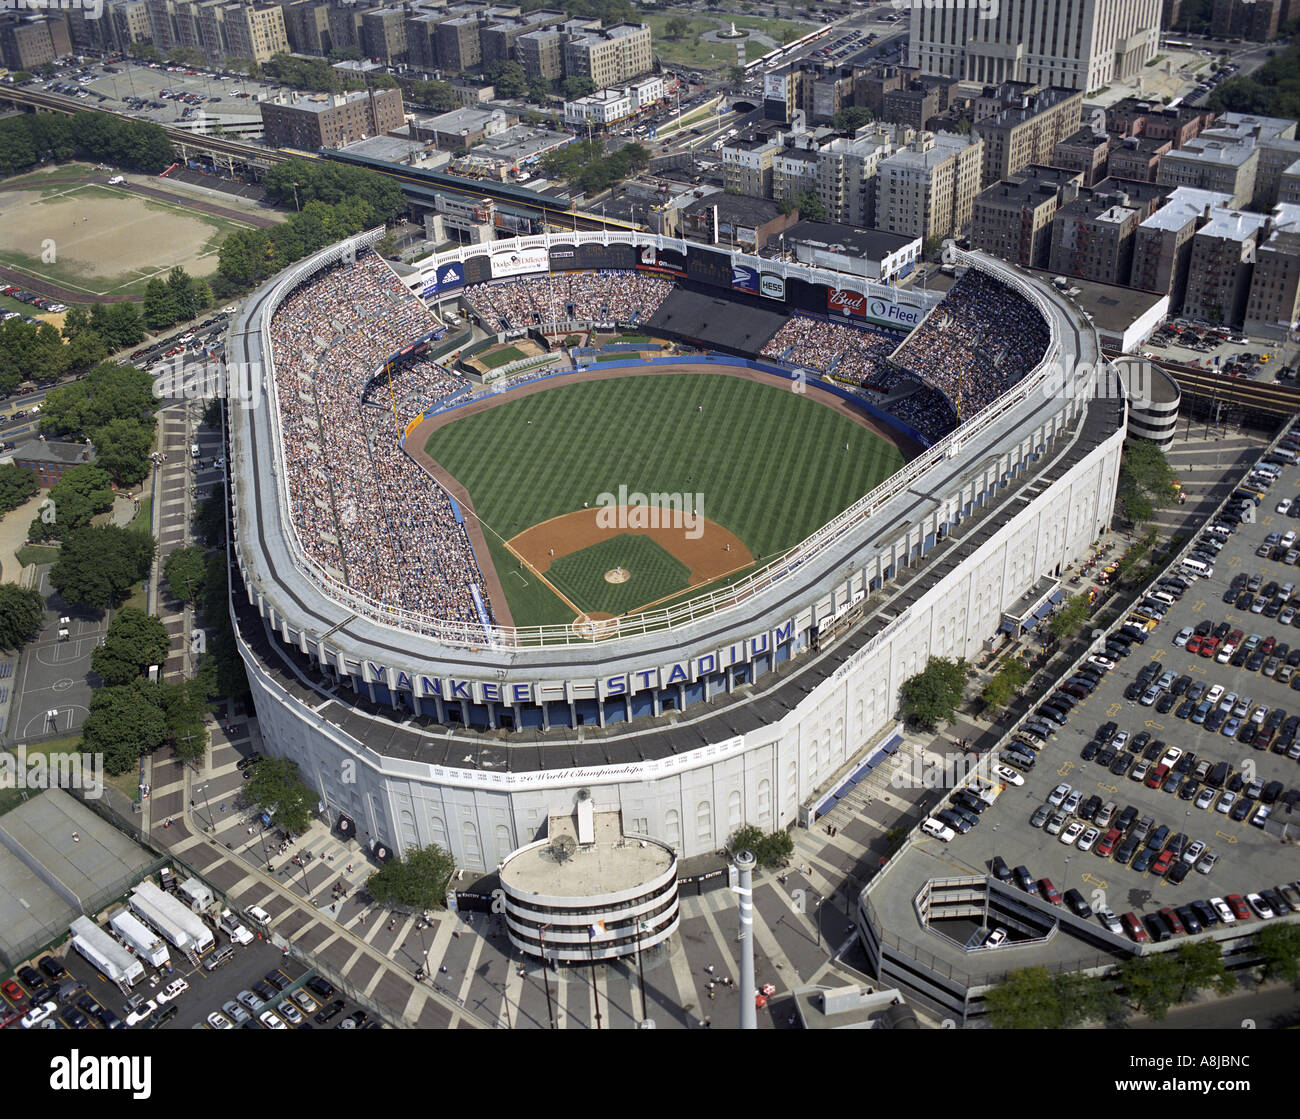 characteristics of new and old baseball stadiums in american cities The best mlb stadiums according to major league correspondents who work   beautiful location in a unique city with different energy, big crowds and great  music  a modern park with an old-school feel, the mariners' home has aged  well  with good bones and a unique water feature in right-center field.